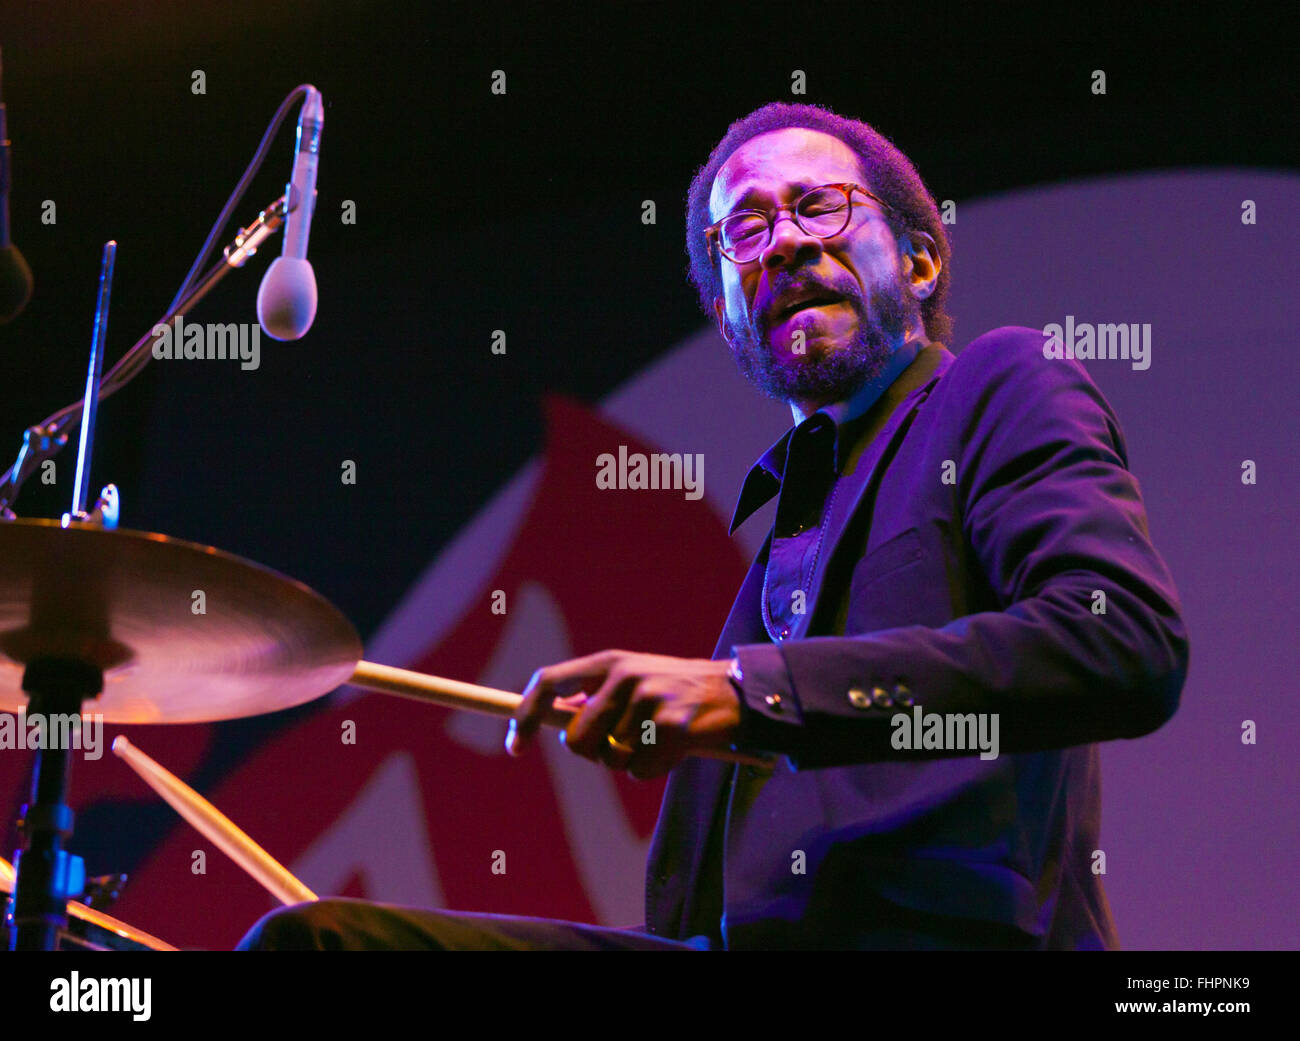 BRIAN BLADE on drums for Chic Corea performing at the 58th Monterey Jazz Festival - California - Stock Image